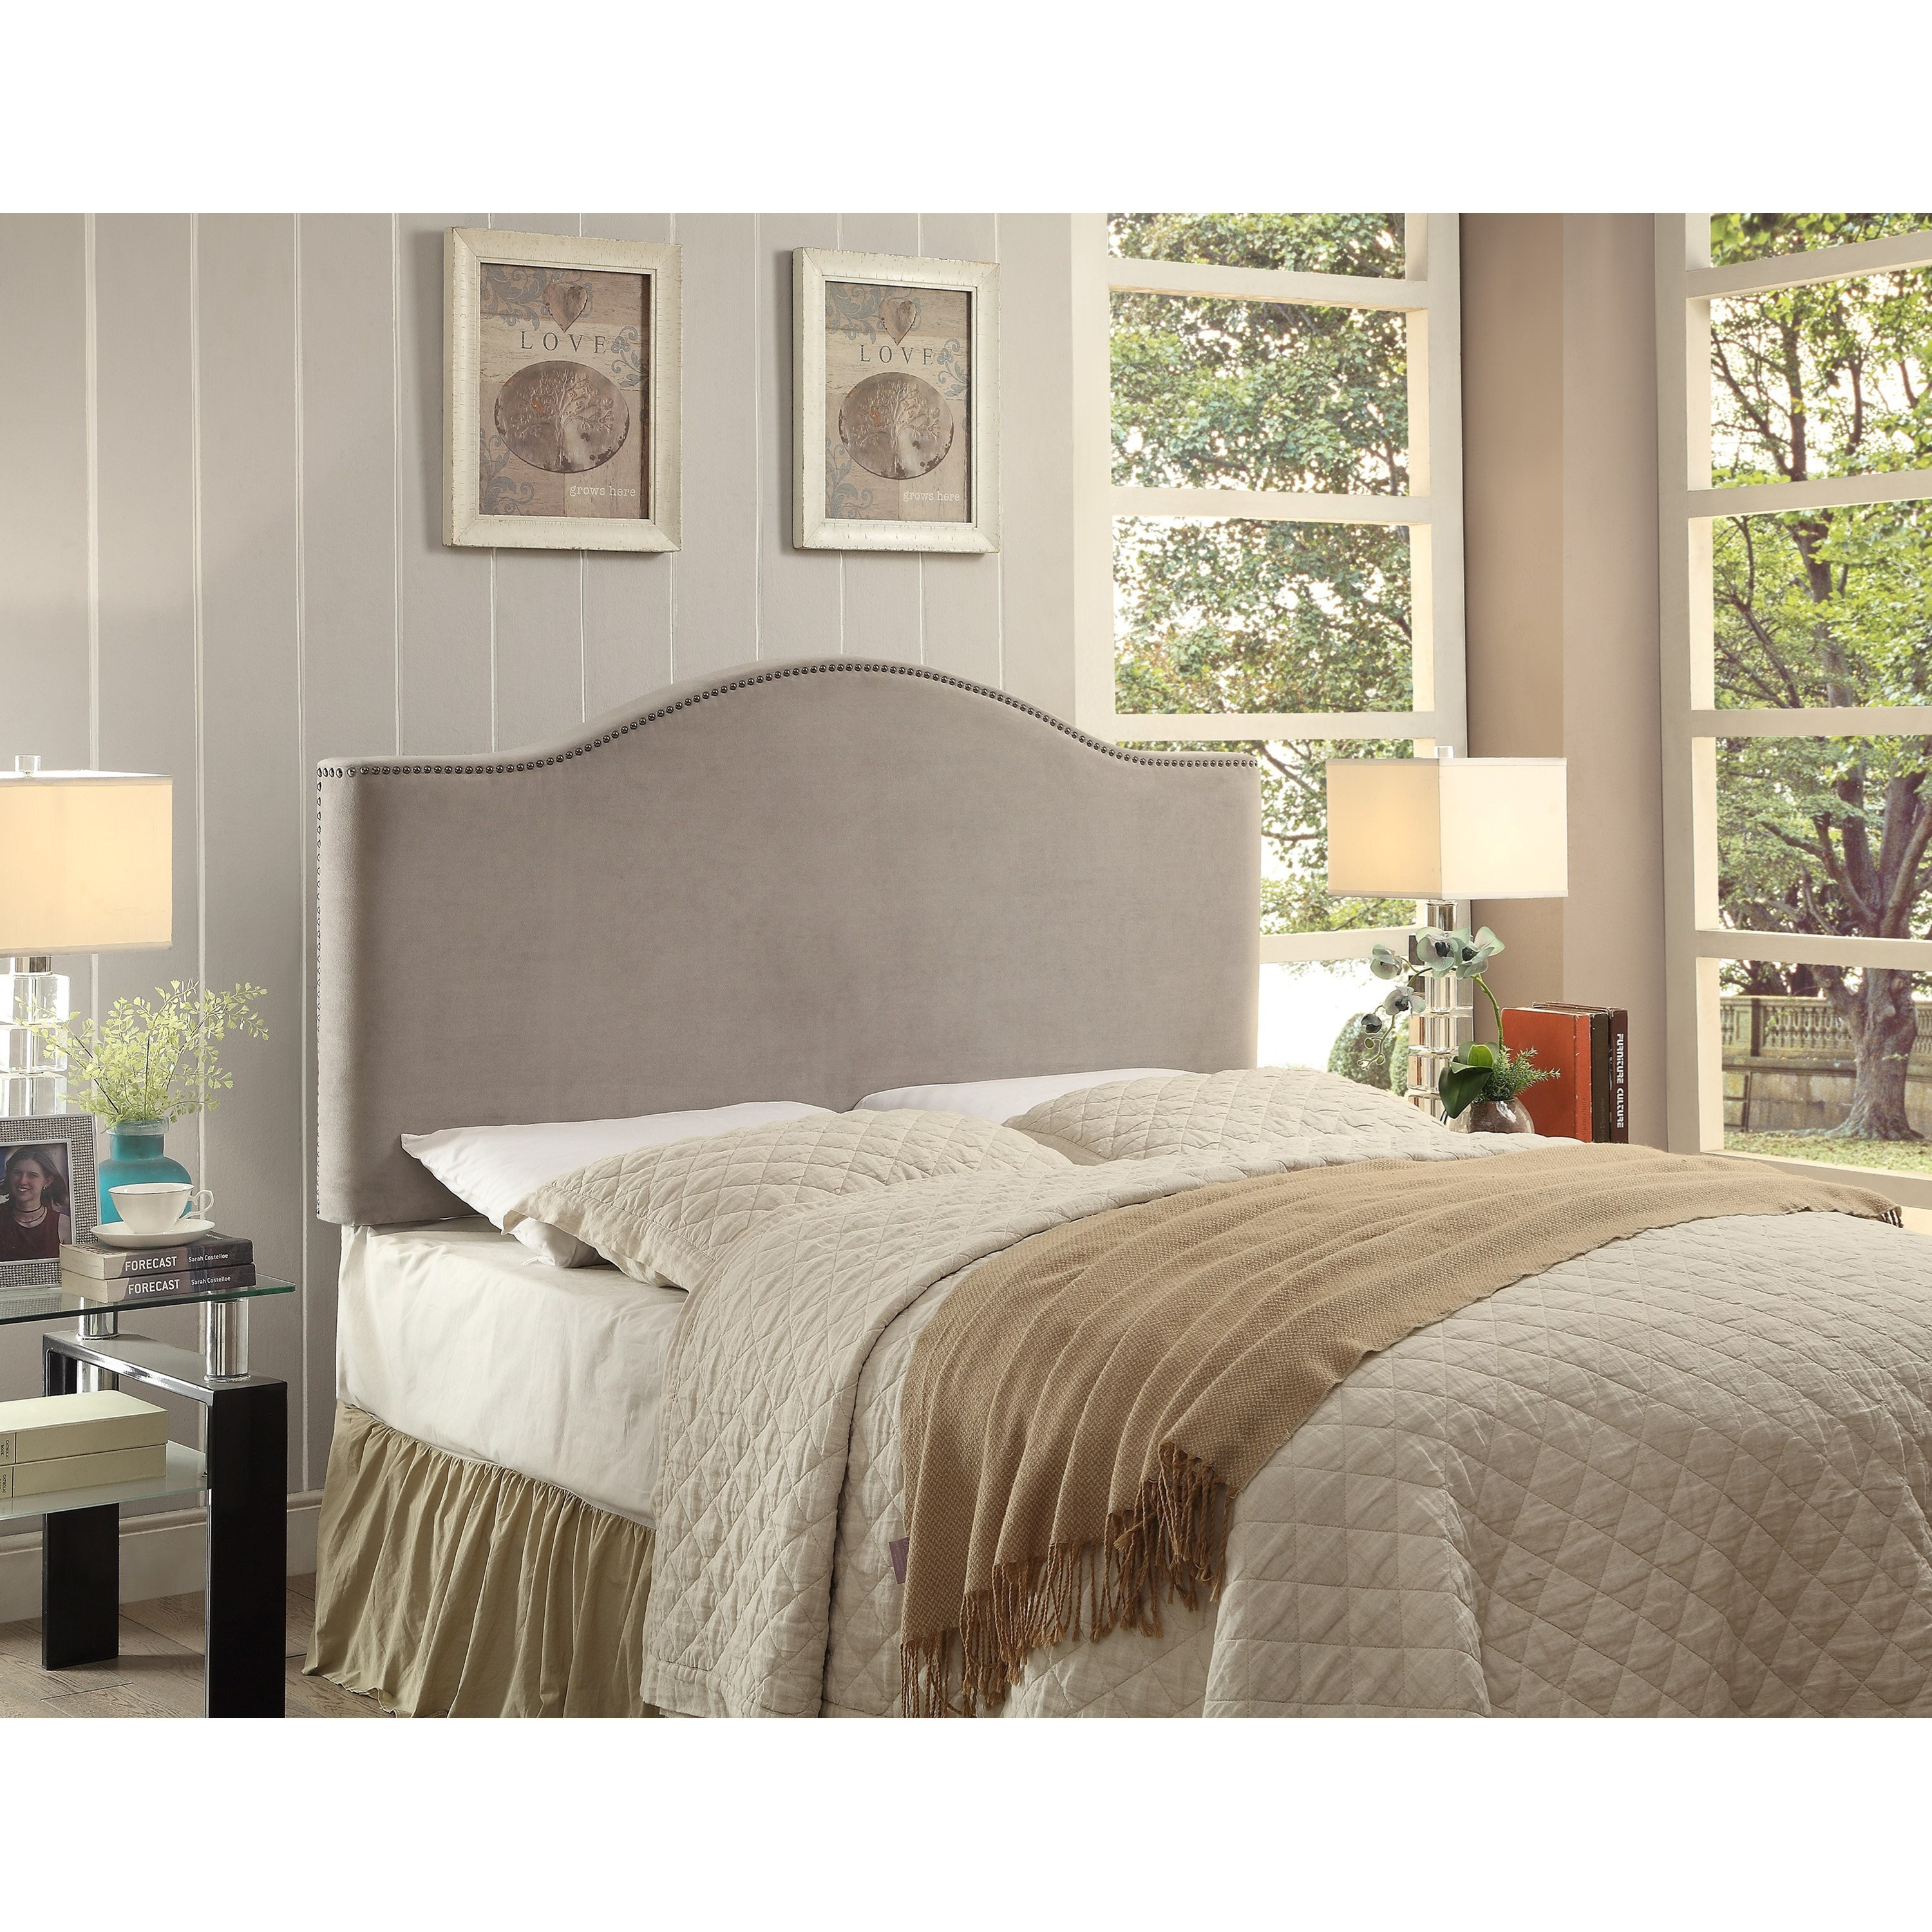 Crown Mark Upholstered Headboards Beatrice Full/Queen Headboard - Item Number: 5285-FQ-HB